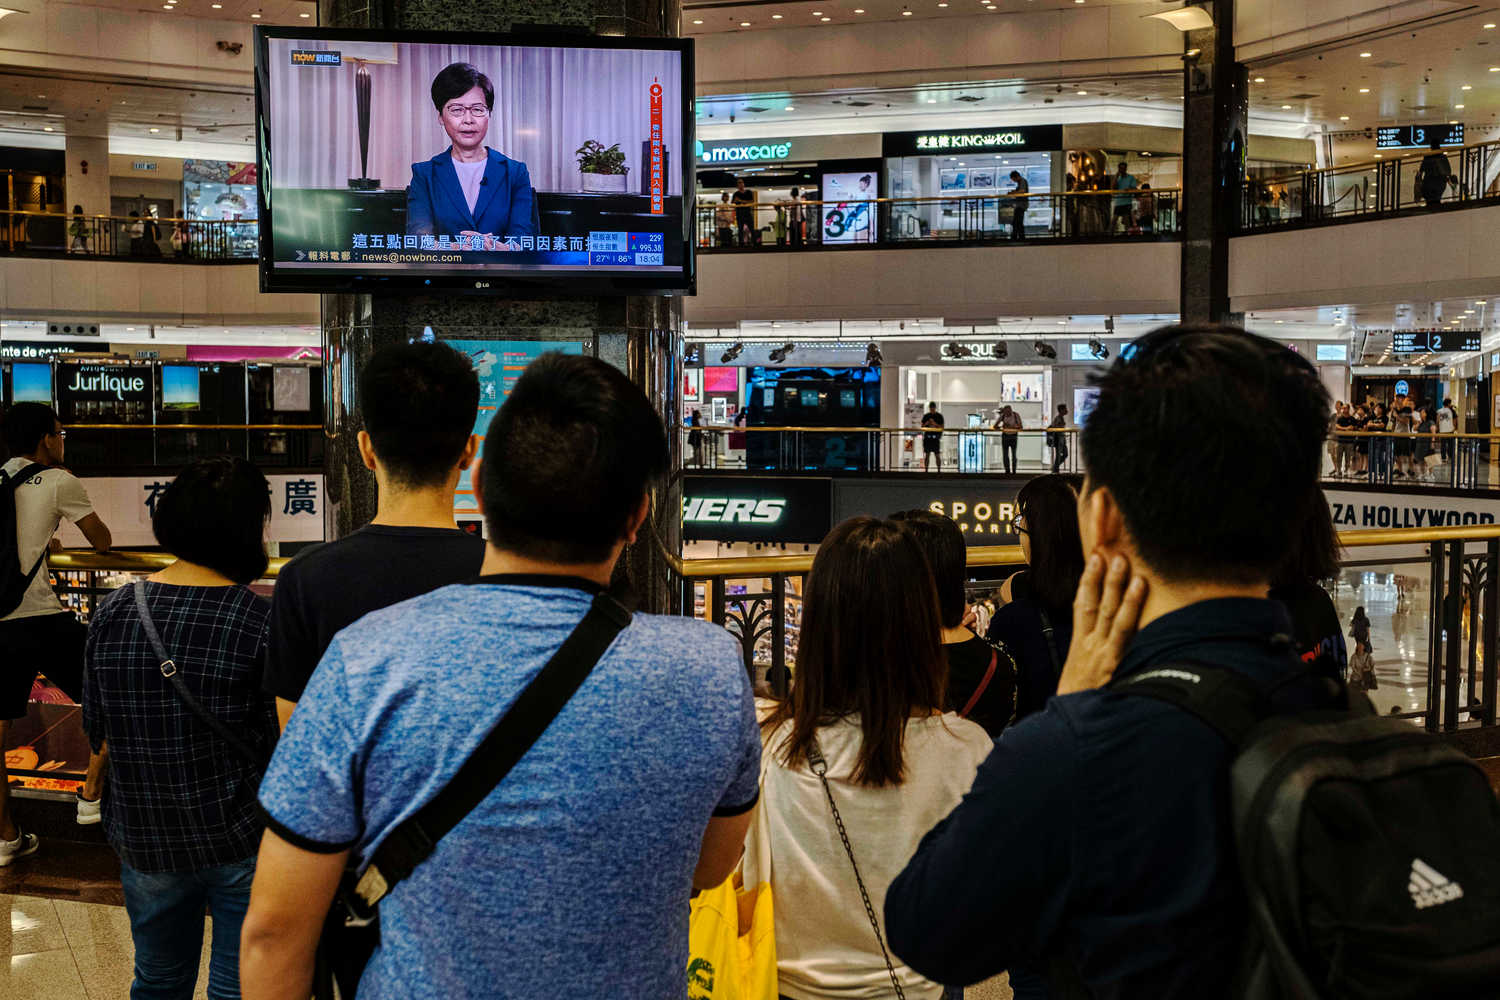 Hong Kong's chief executive, Carrie Lam, gave a televised statement on Wednesday in which she said she would withdraw the contentious extradition bill. Credit Lam Yik Fei for The New York Times